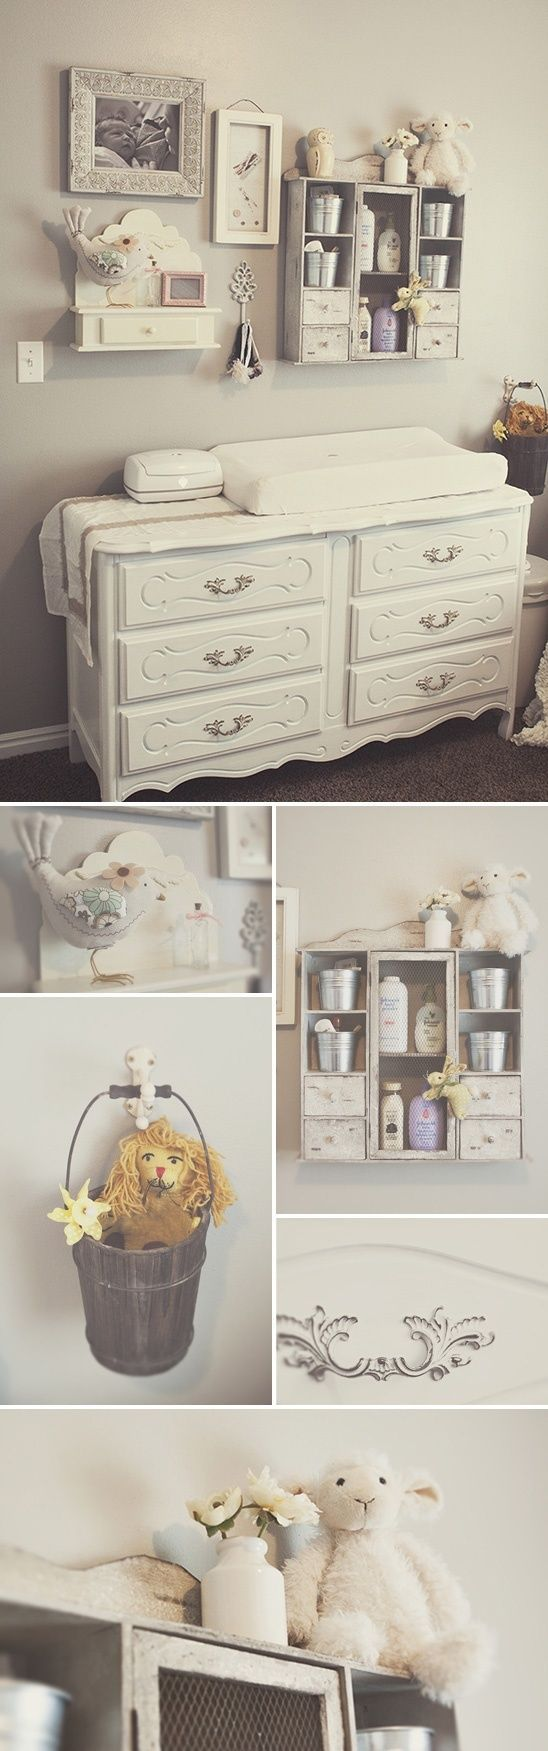 Flawless 101 Best Changing Table Ideas & Inspiration https://mybabydoo.com/2017/05/09/101-best-changing-table-ideas-inspiration/ You've taken the opportunity to make papercraft art of Minecraft.66. Schedule your day in a really structured way so that you do not own a lot of spare moment.